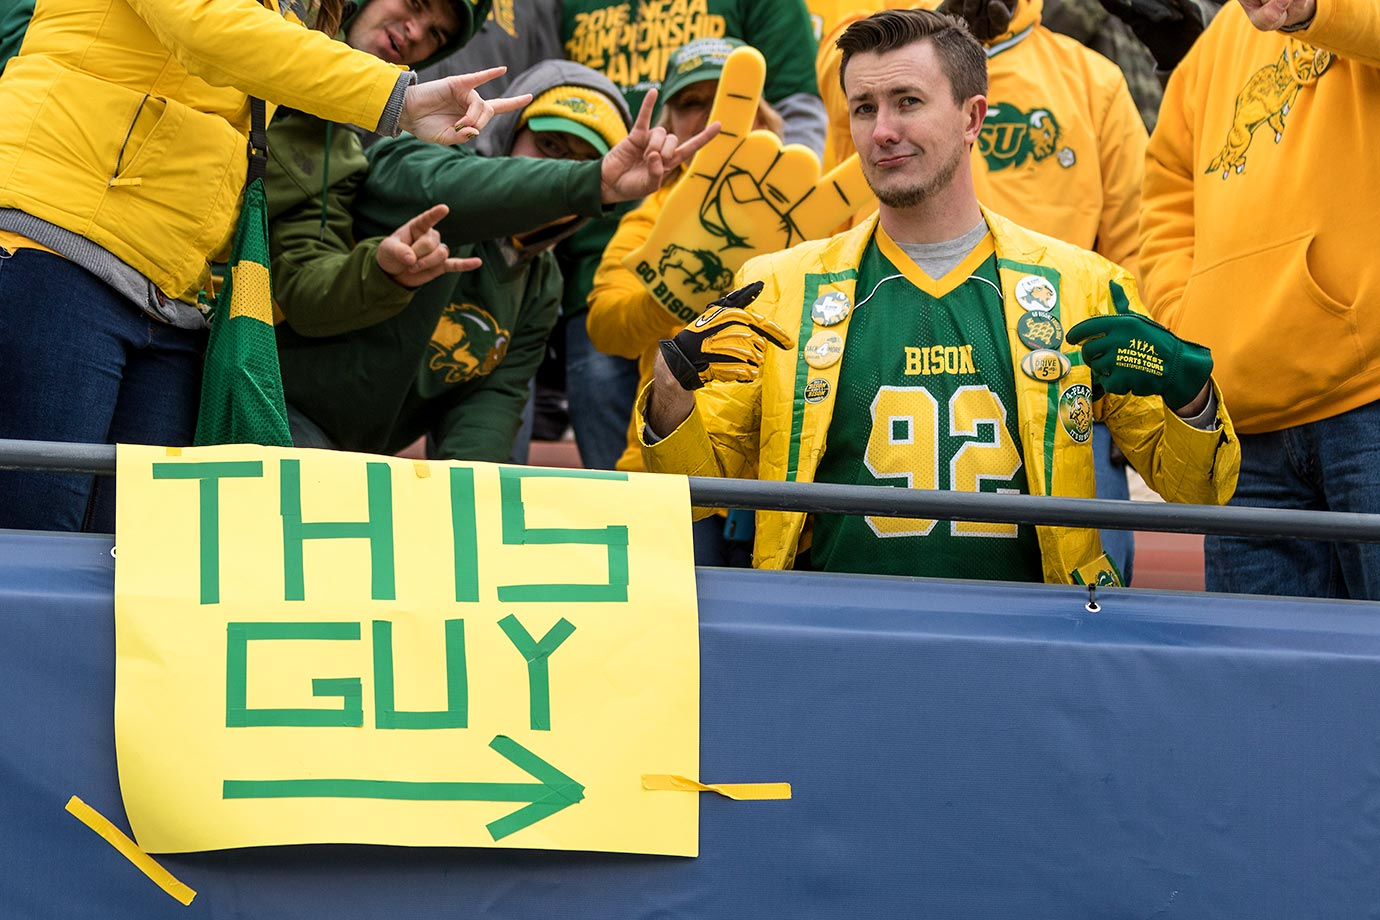 Not, that guy.  North Dakota State Bison fans at the FCS Championship.